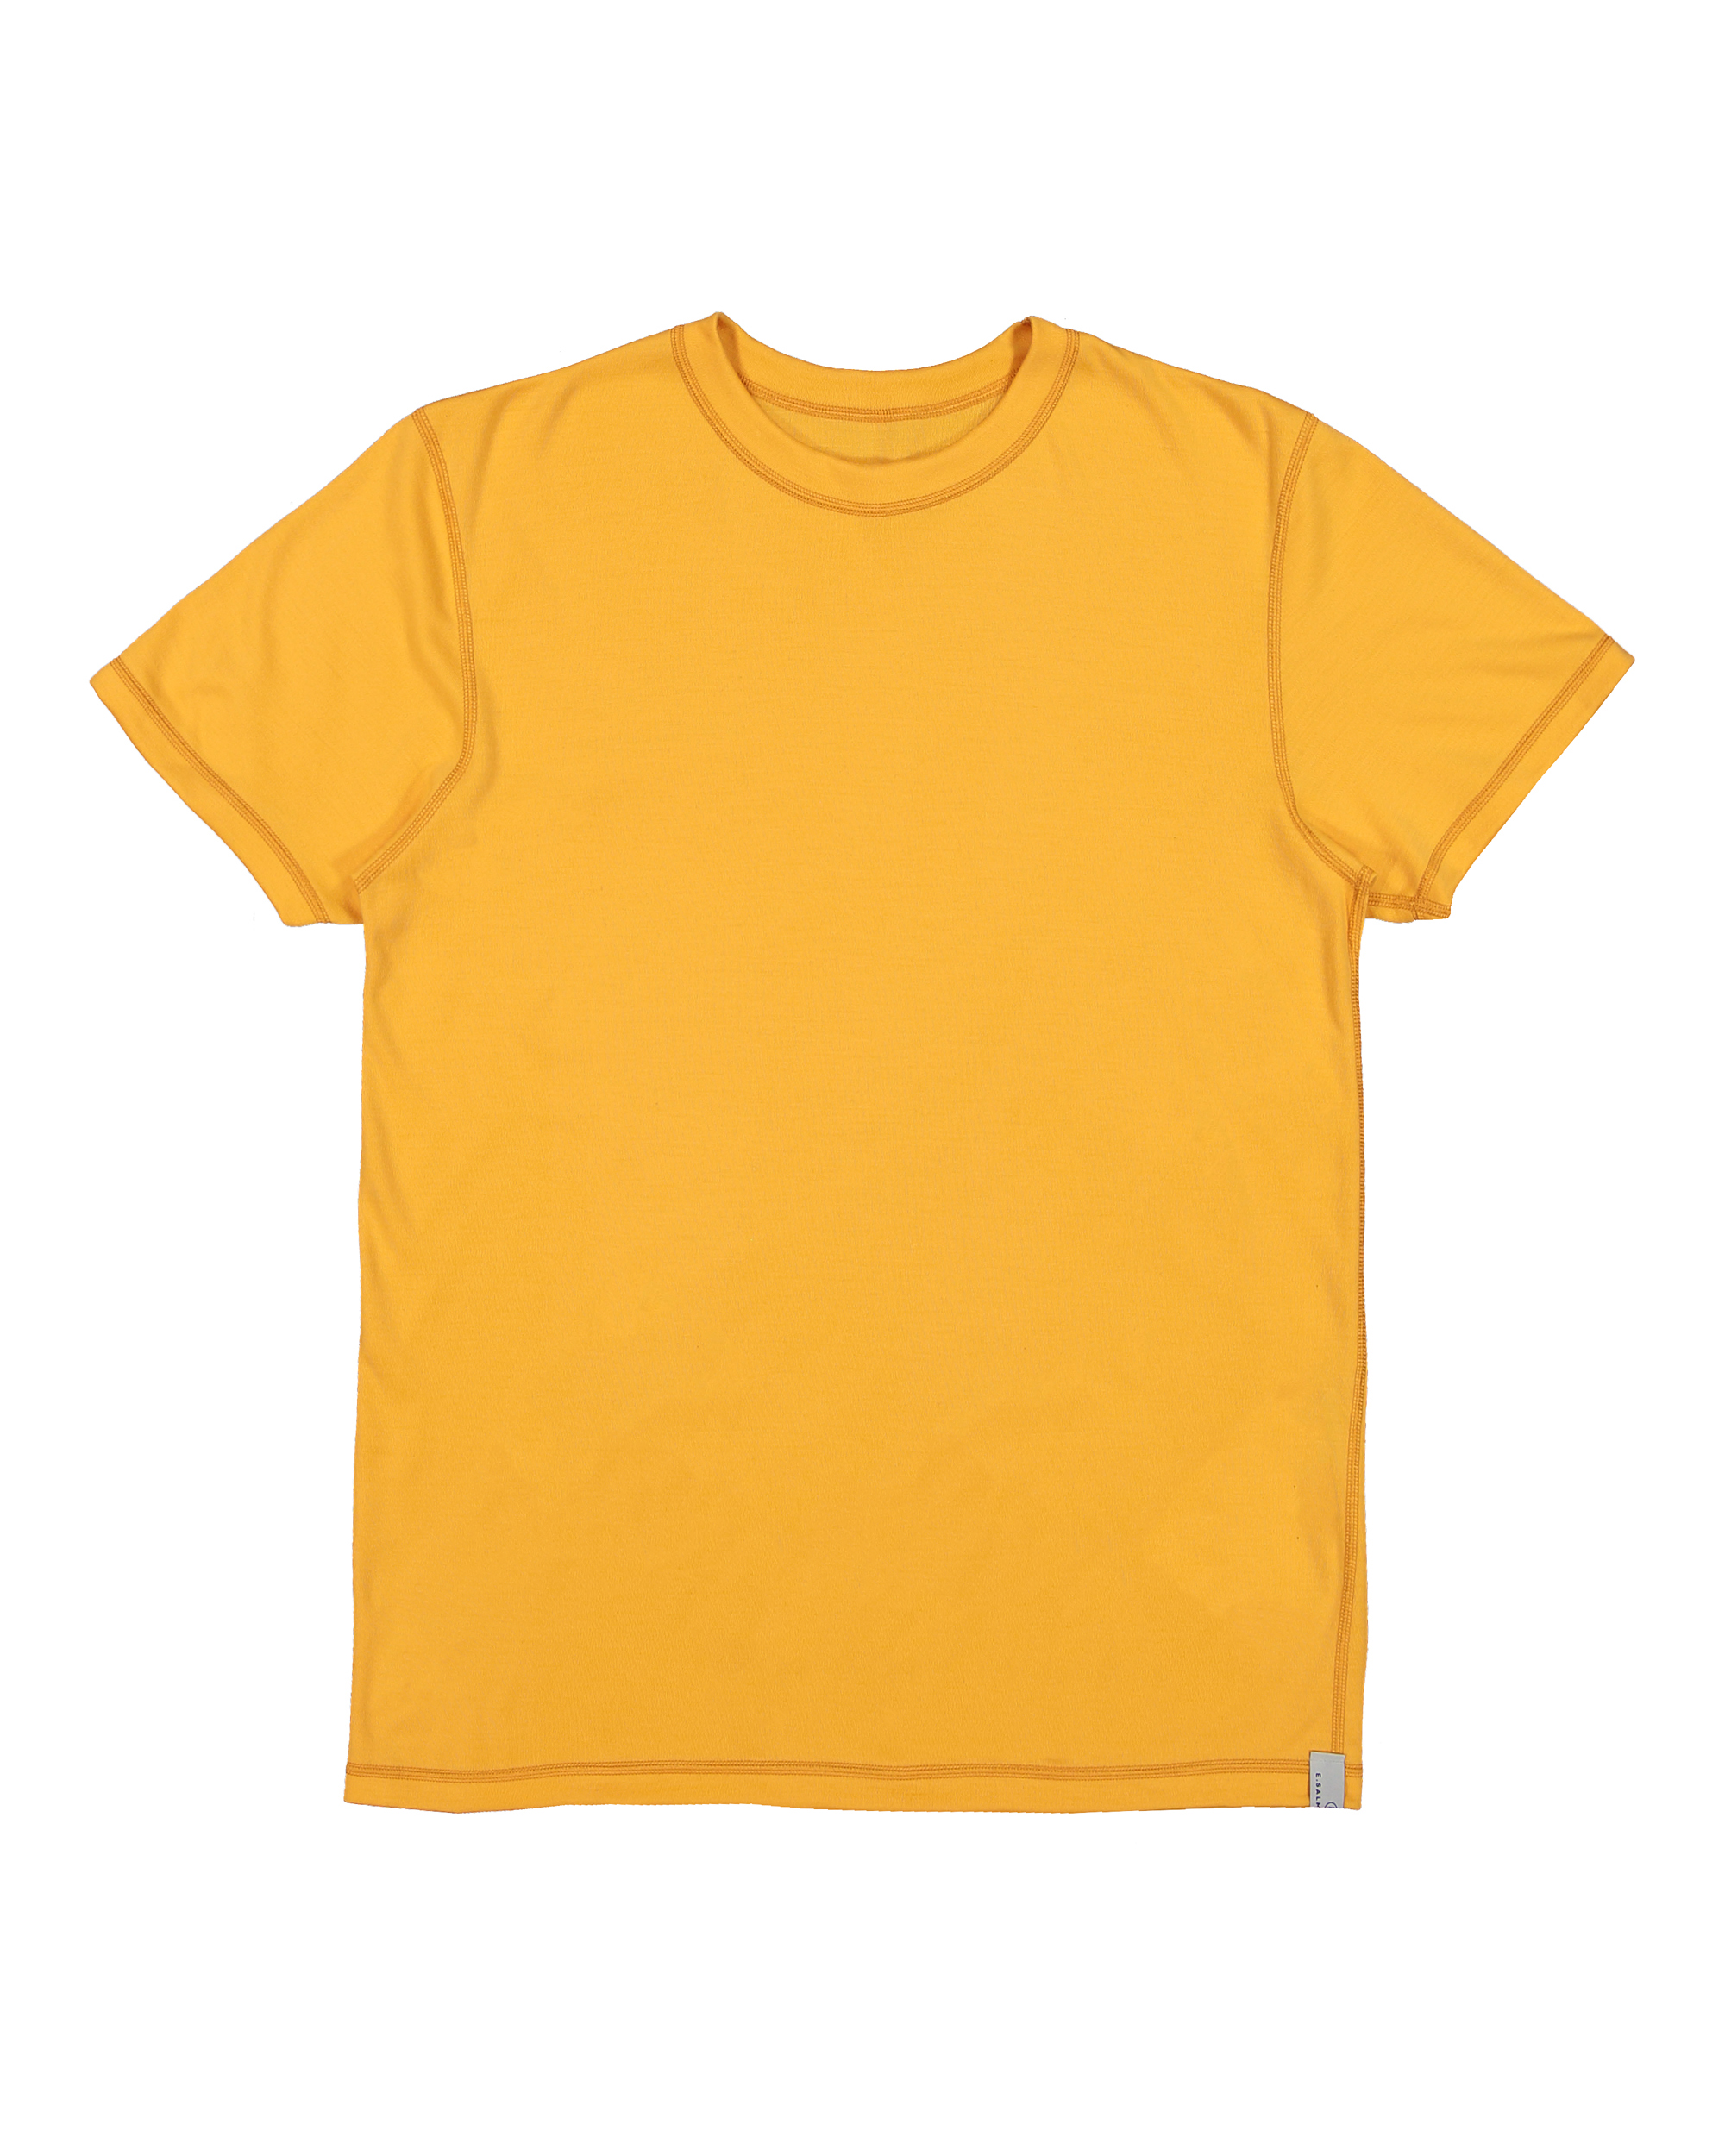 WOOL T-SHIRT (short sleeve)